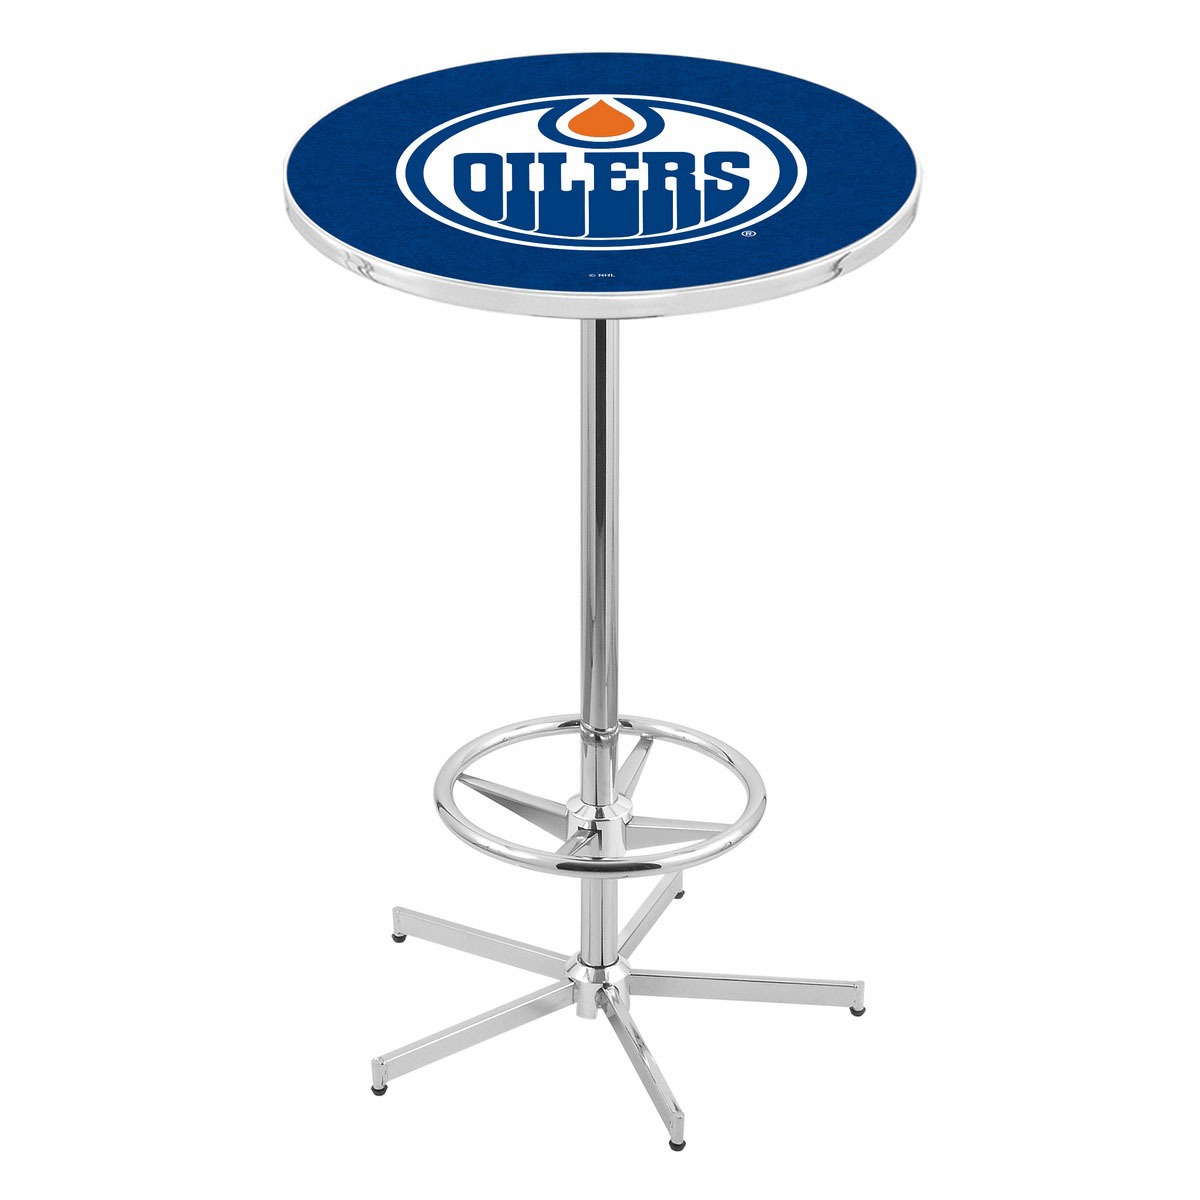 Cheap Chrome Edmonton Oilers Pub Table Product Photo